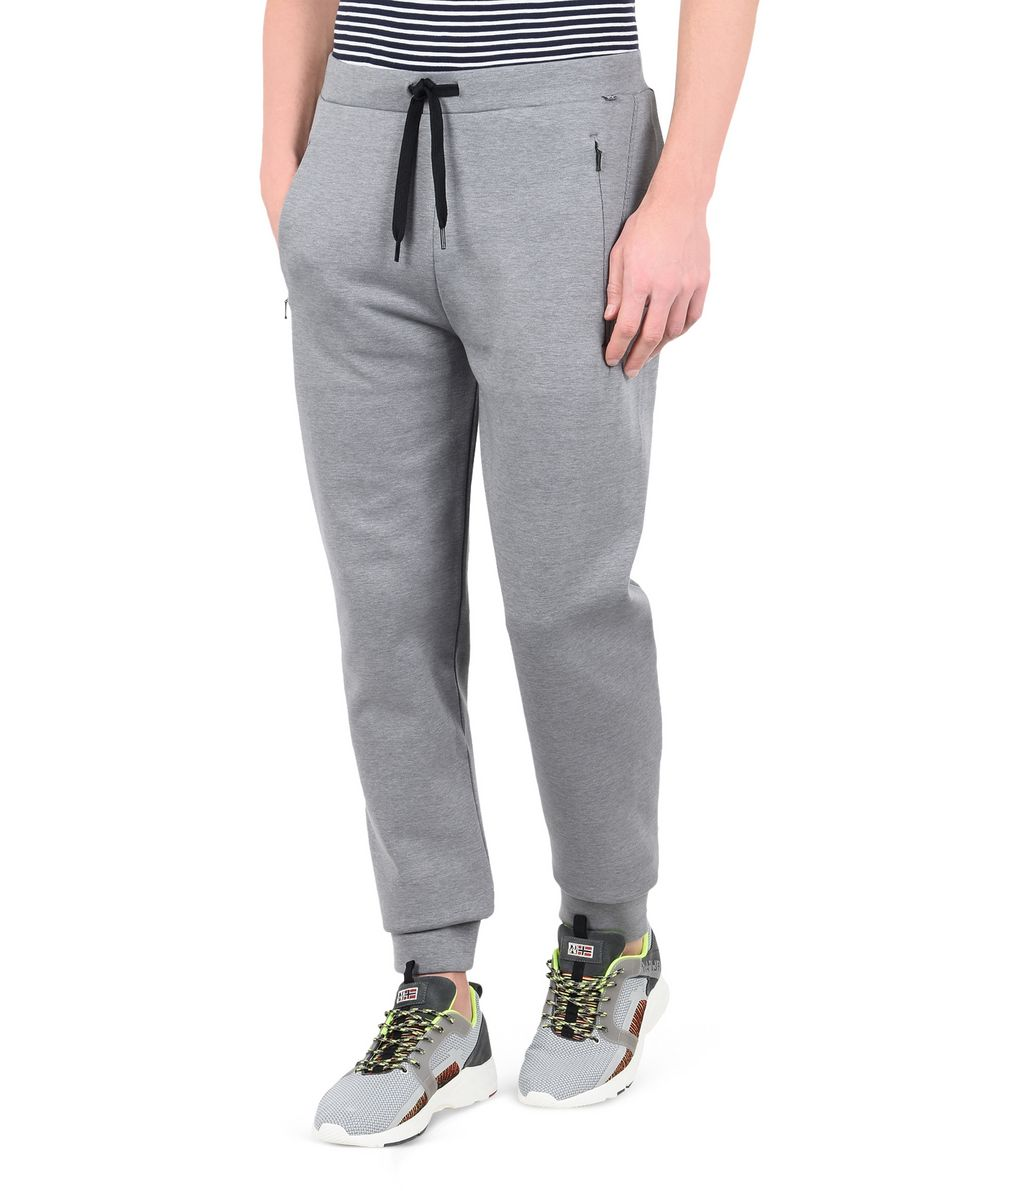 NAPAPIJRI MARAU MAN SWEATPANTS,GREY